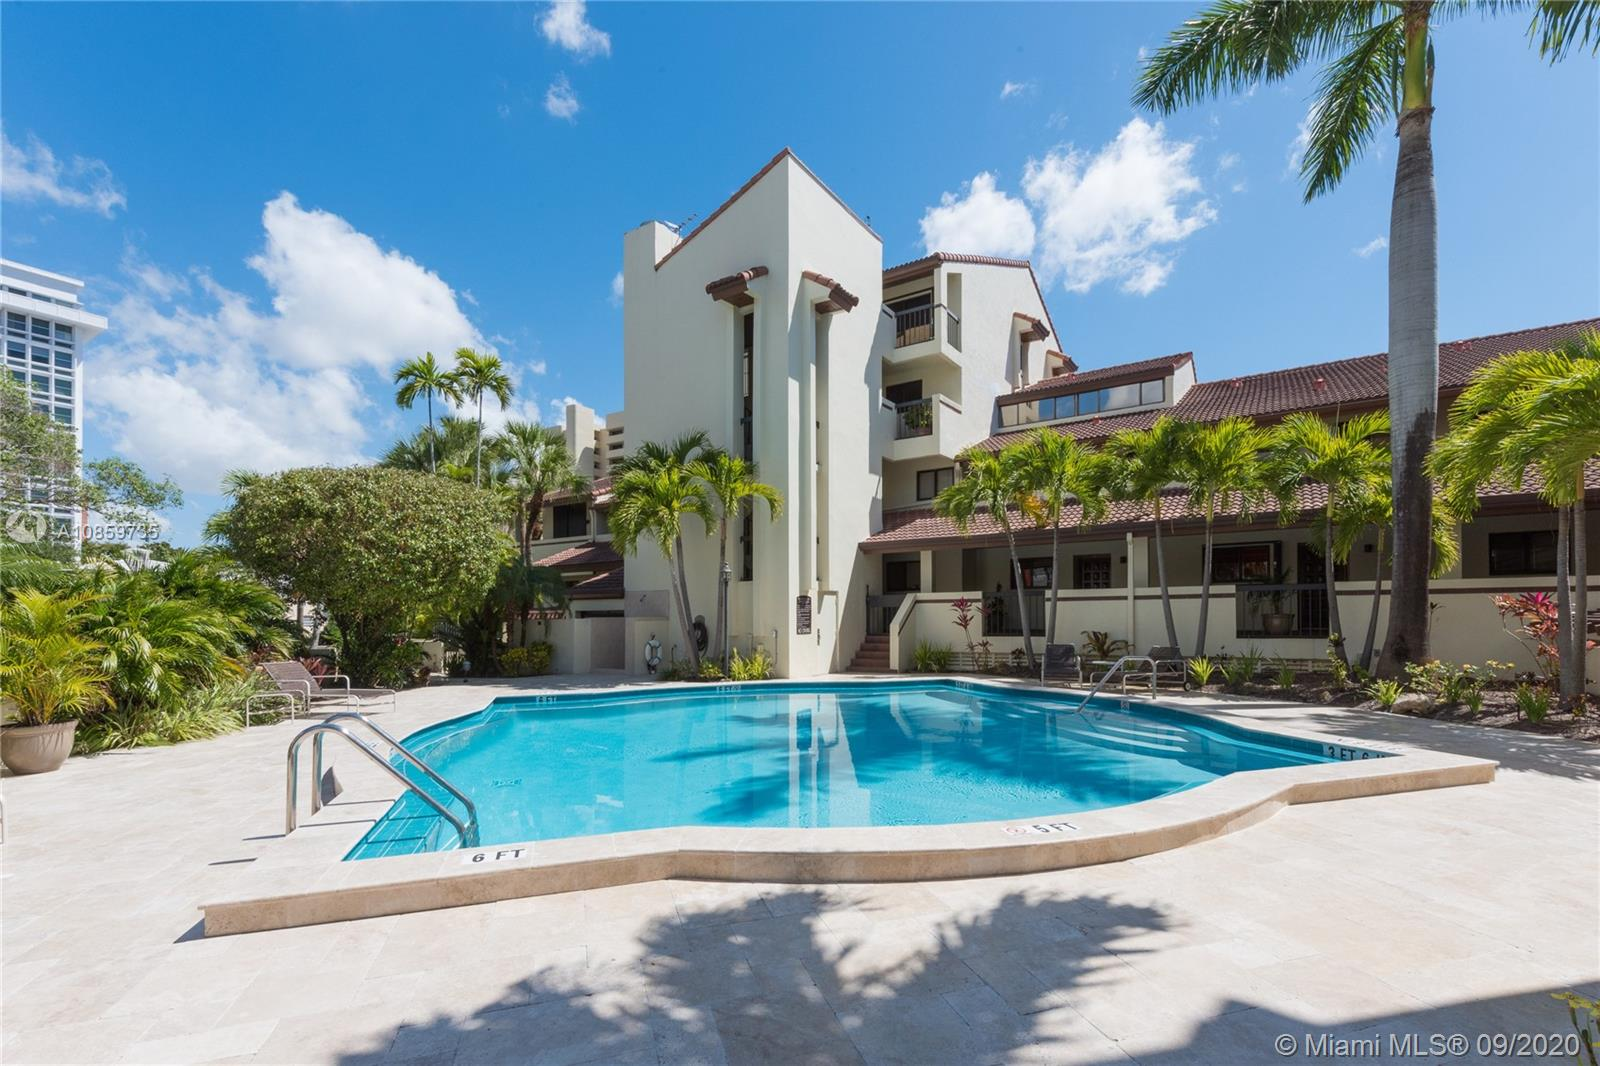 2600 Cardena St # 16, Coral Gables, Florida 33134, 2 Bedrooms Bedrooms, ,3 BathroomsBathrooms,Residential,For Sale,2600 Cardena St # 16,A10859735